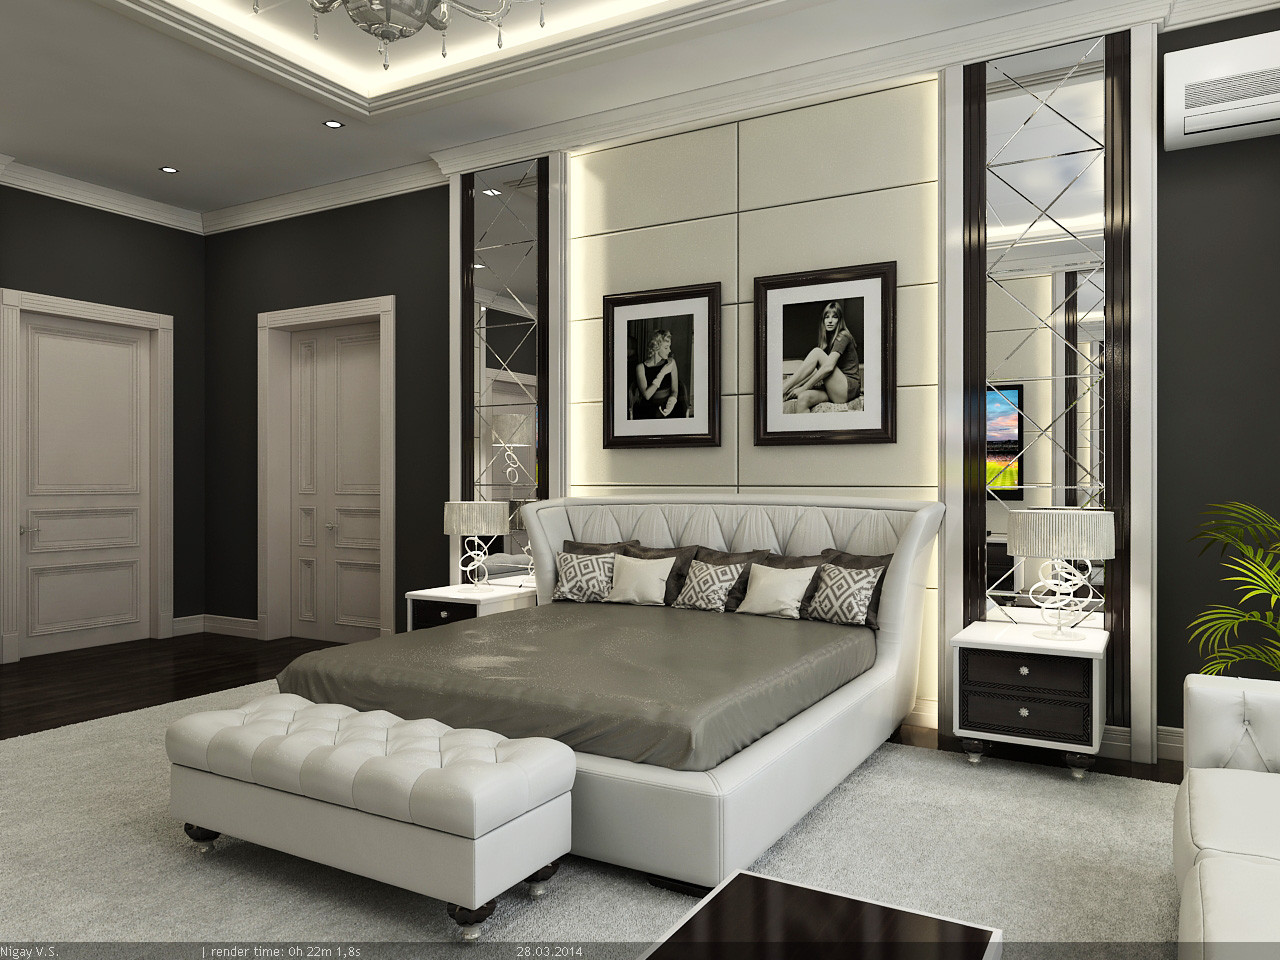 Interior master bedroom 3d model for Decor 3d model